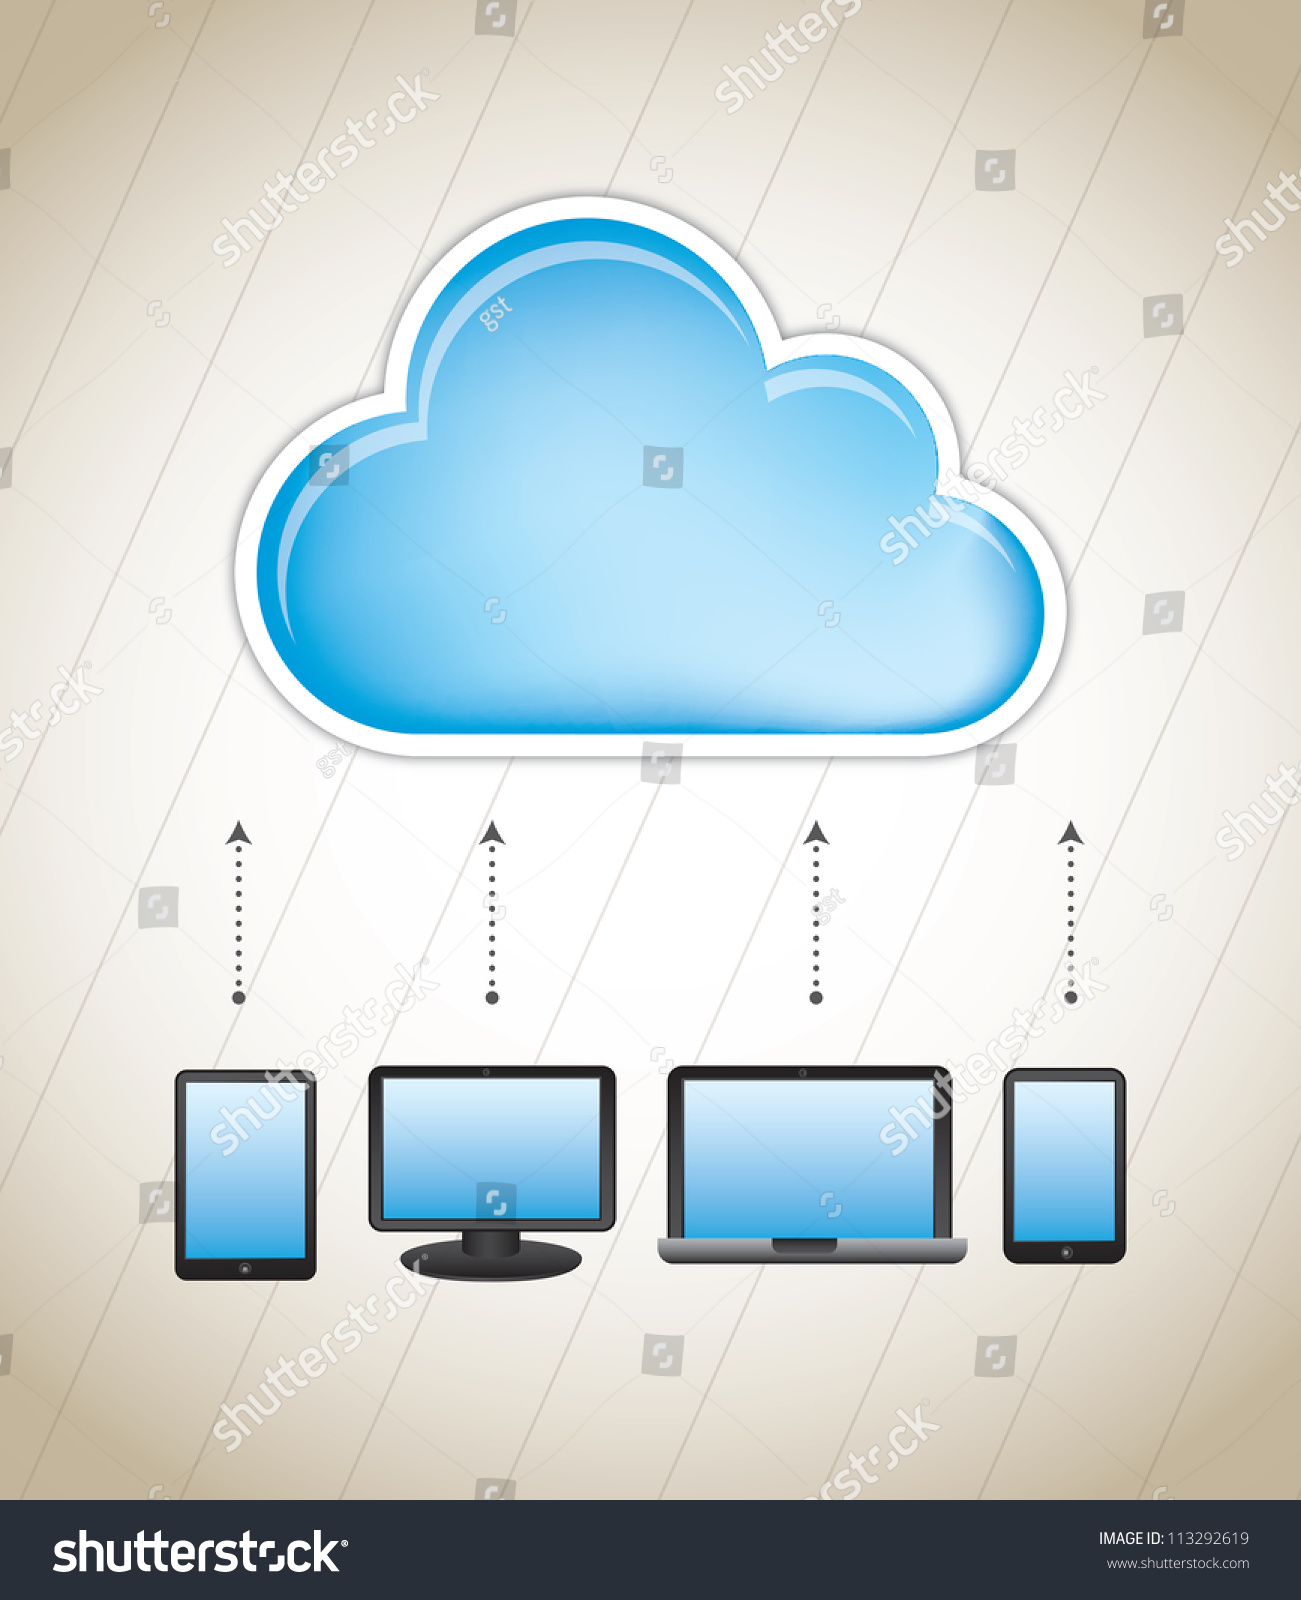 Cloud Storage With Different Communication Devices Stock